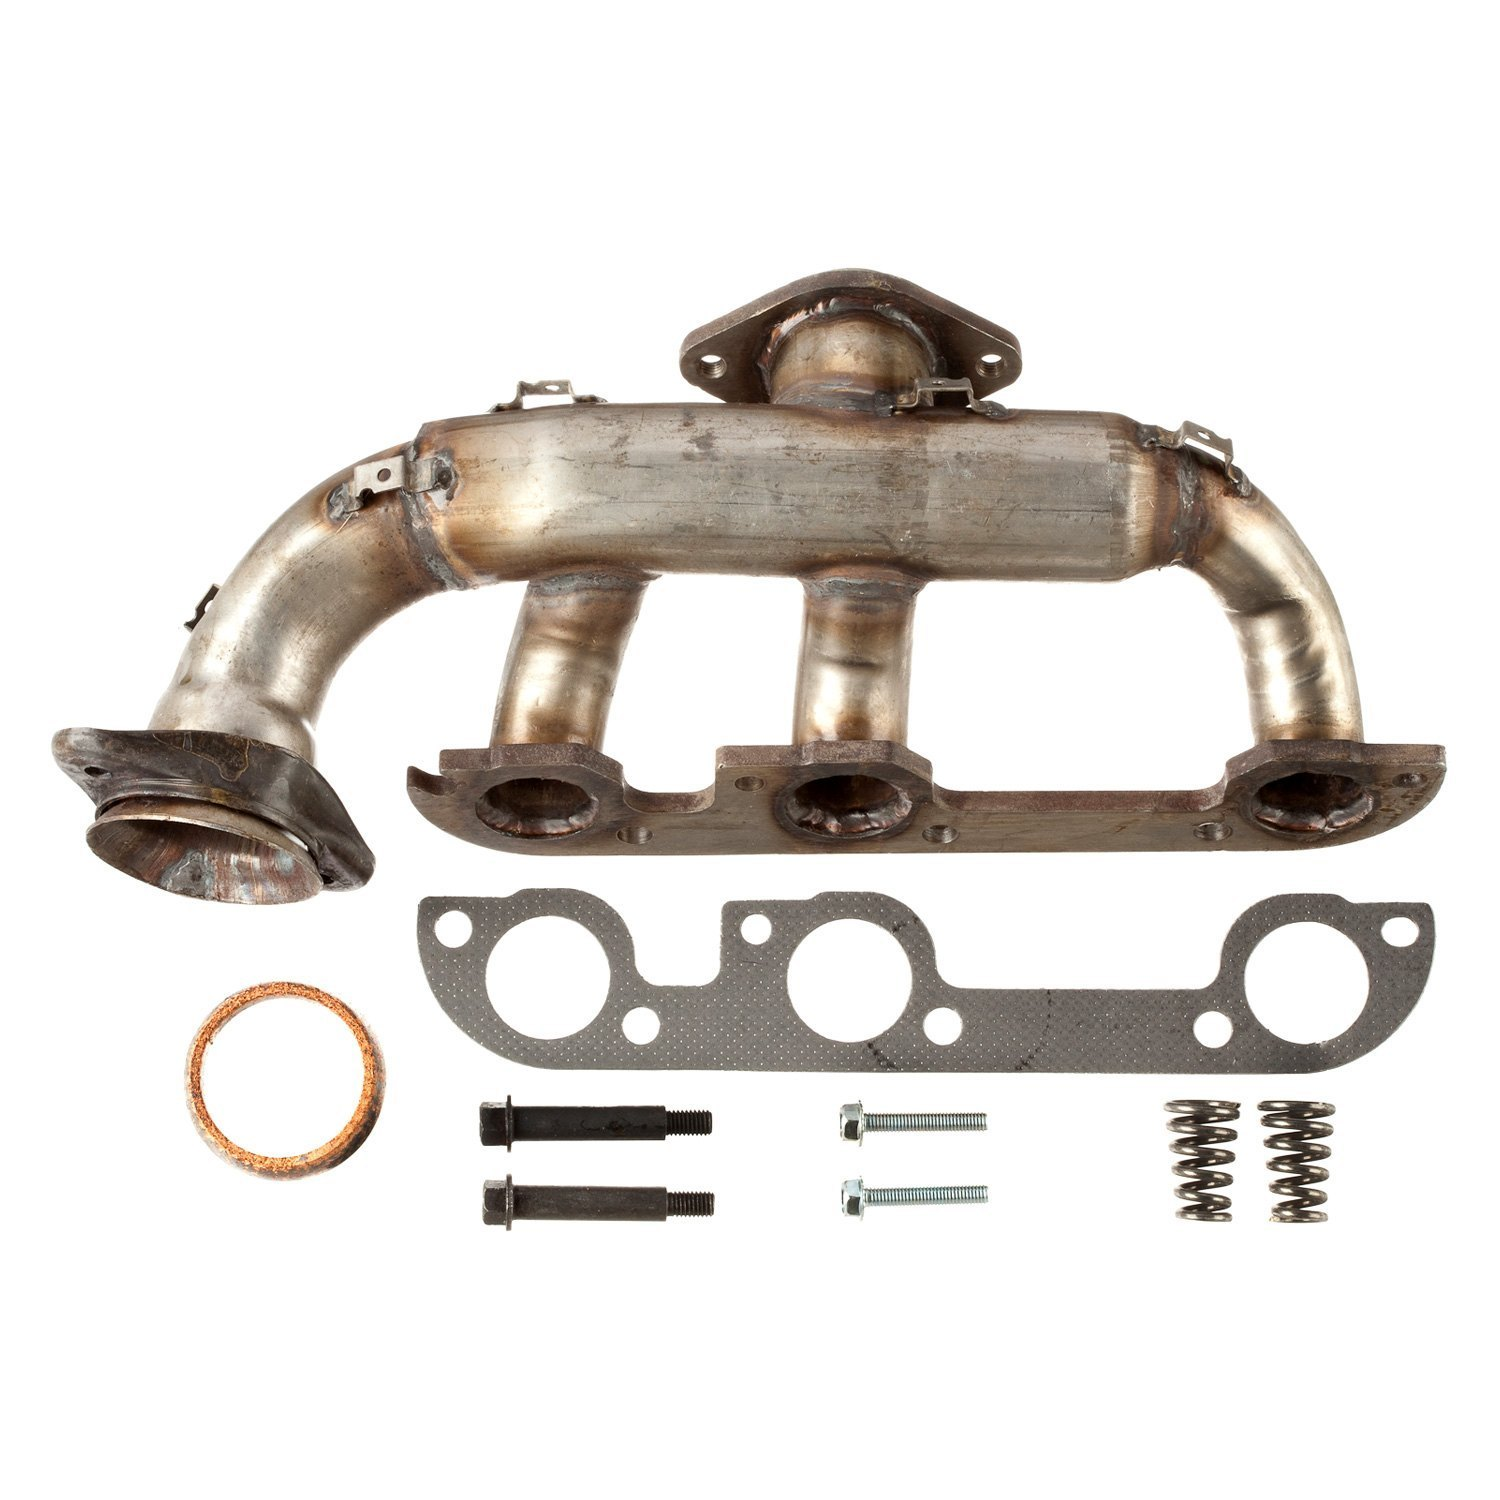 1992 Oldsmobile 98 Interior: Chevy S-10 Pickup 1992 Natural Exhaust Manifold